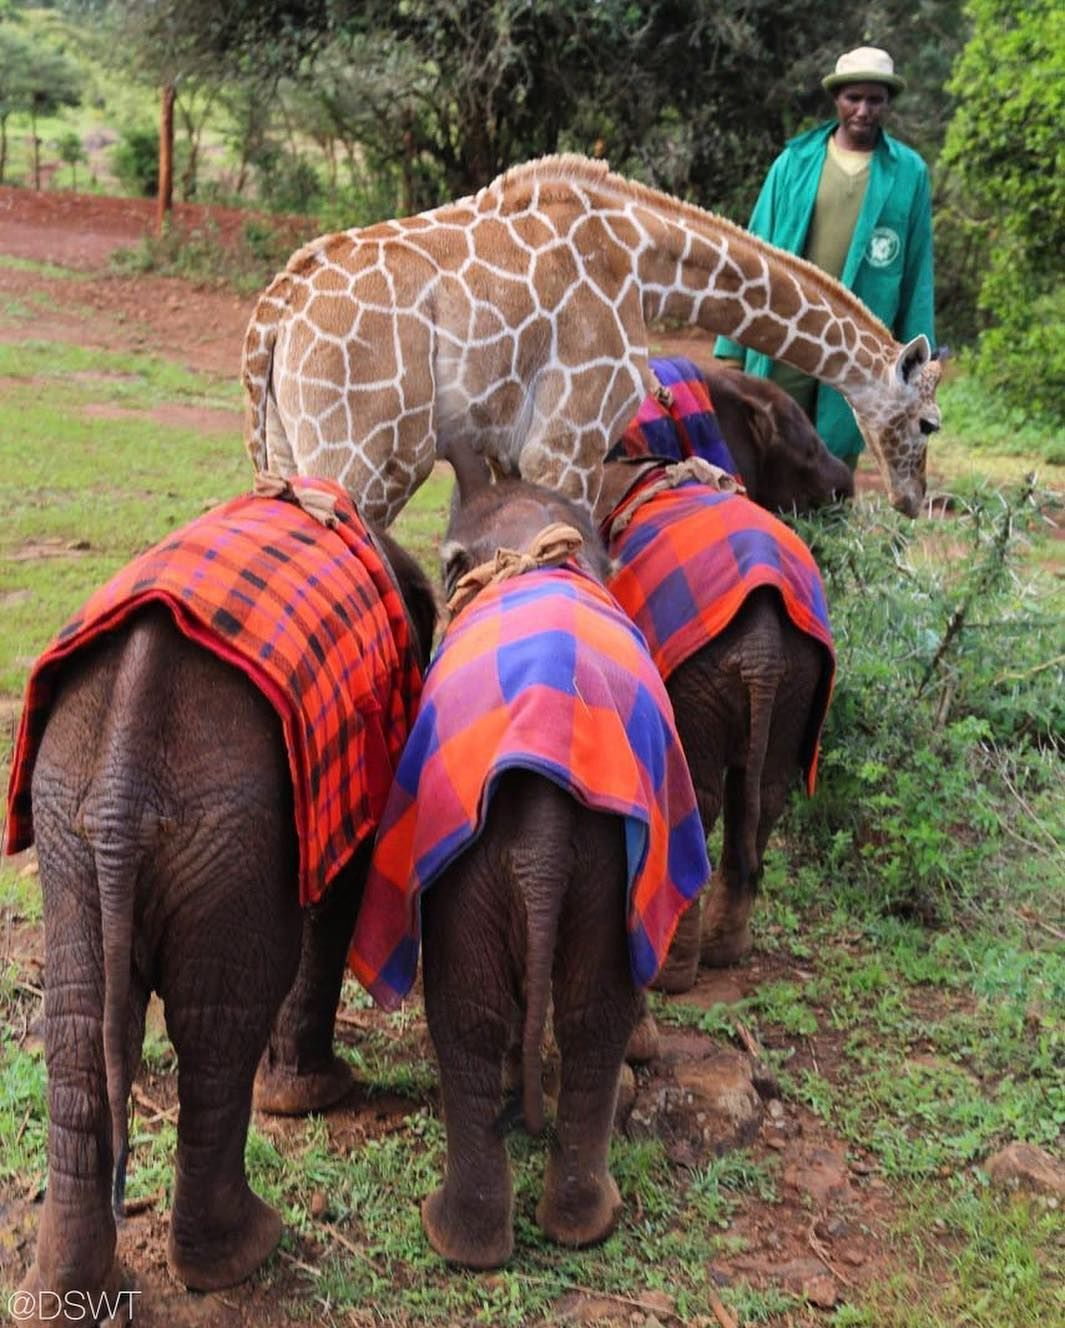 David Sheldrick Wildlife Trust On Instagram As Our Herd Reminds